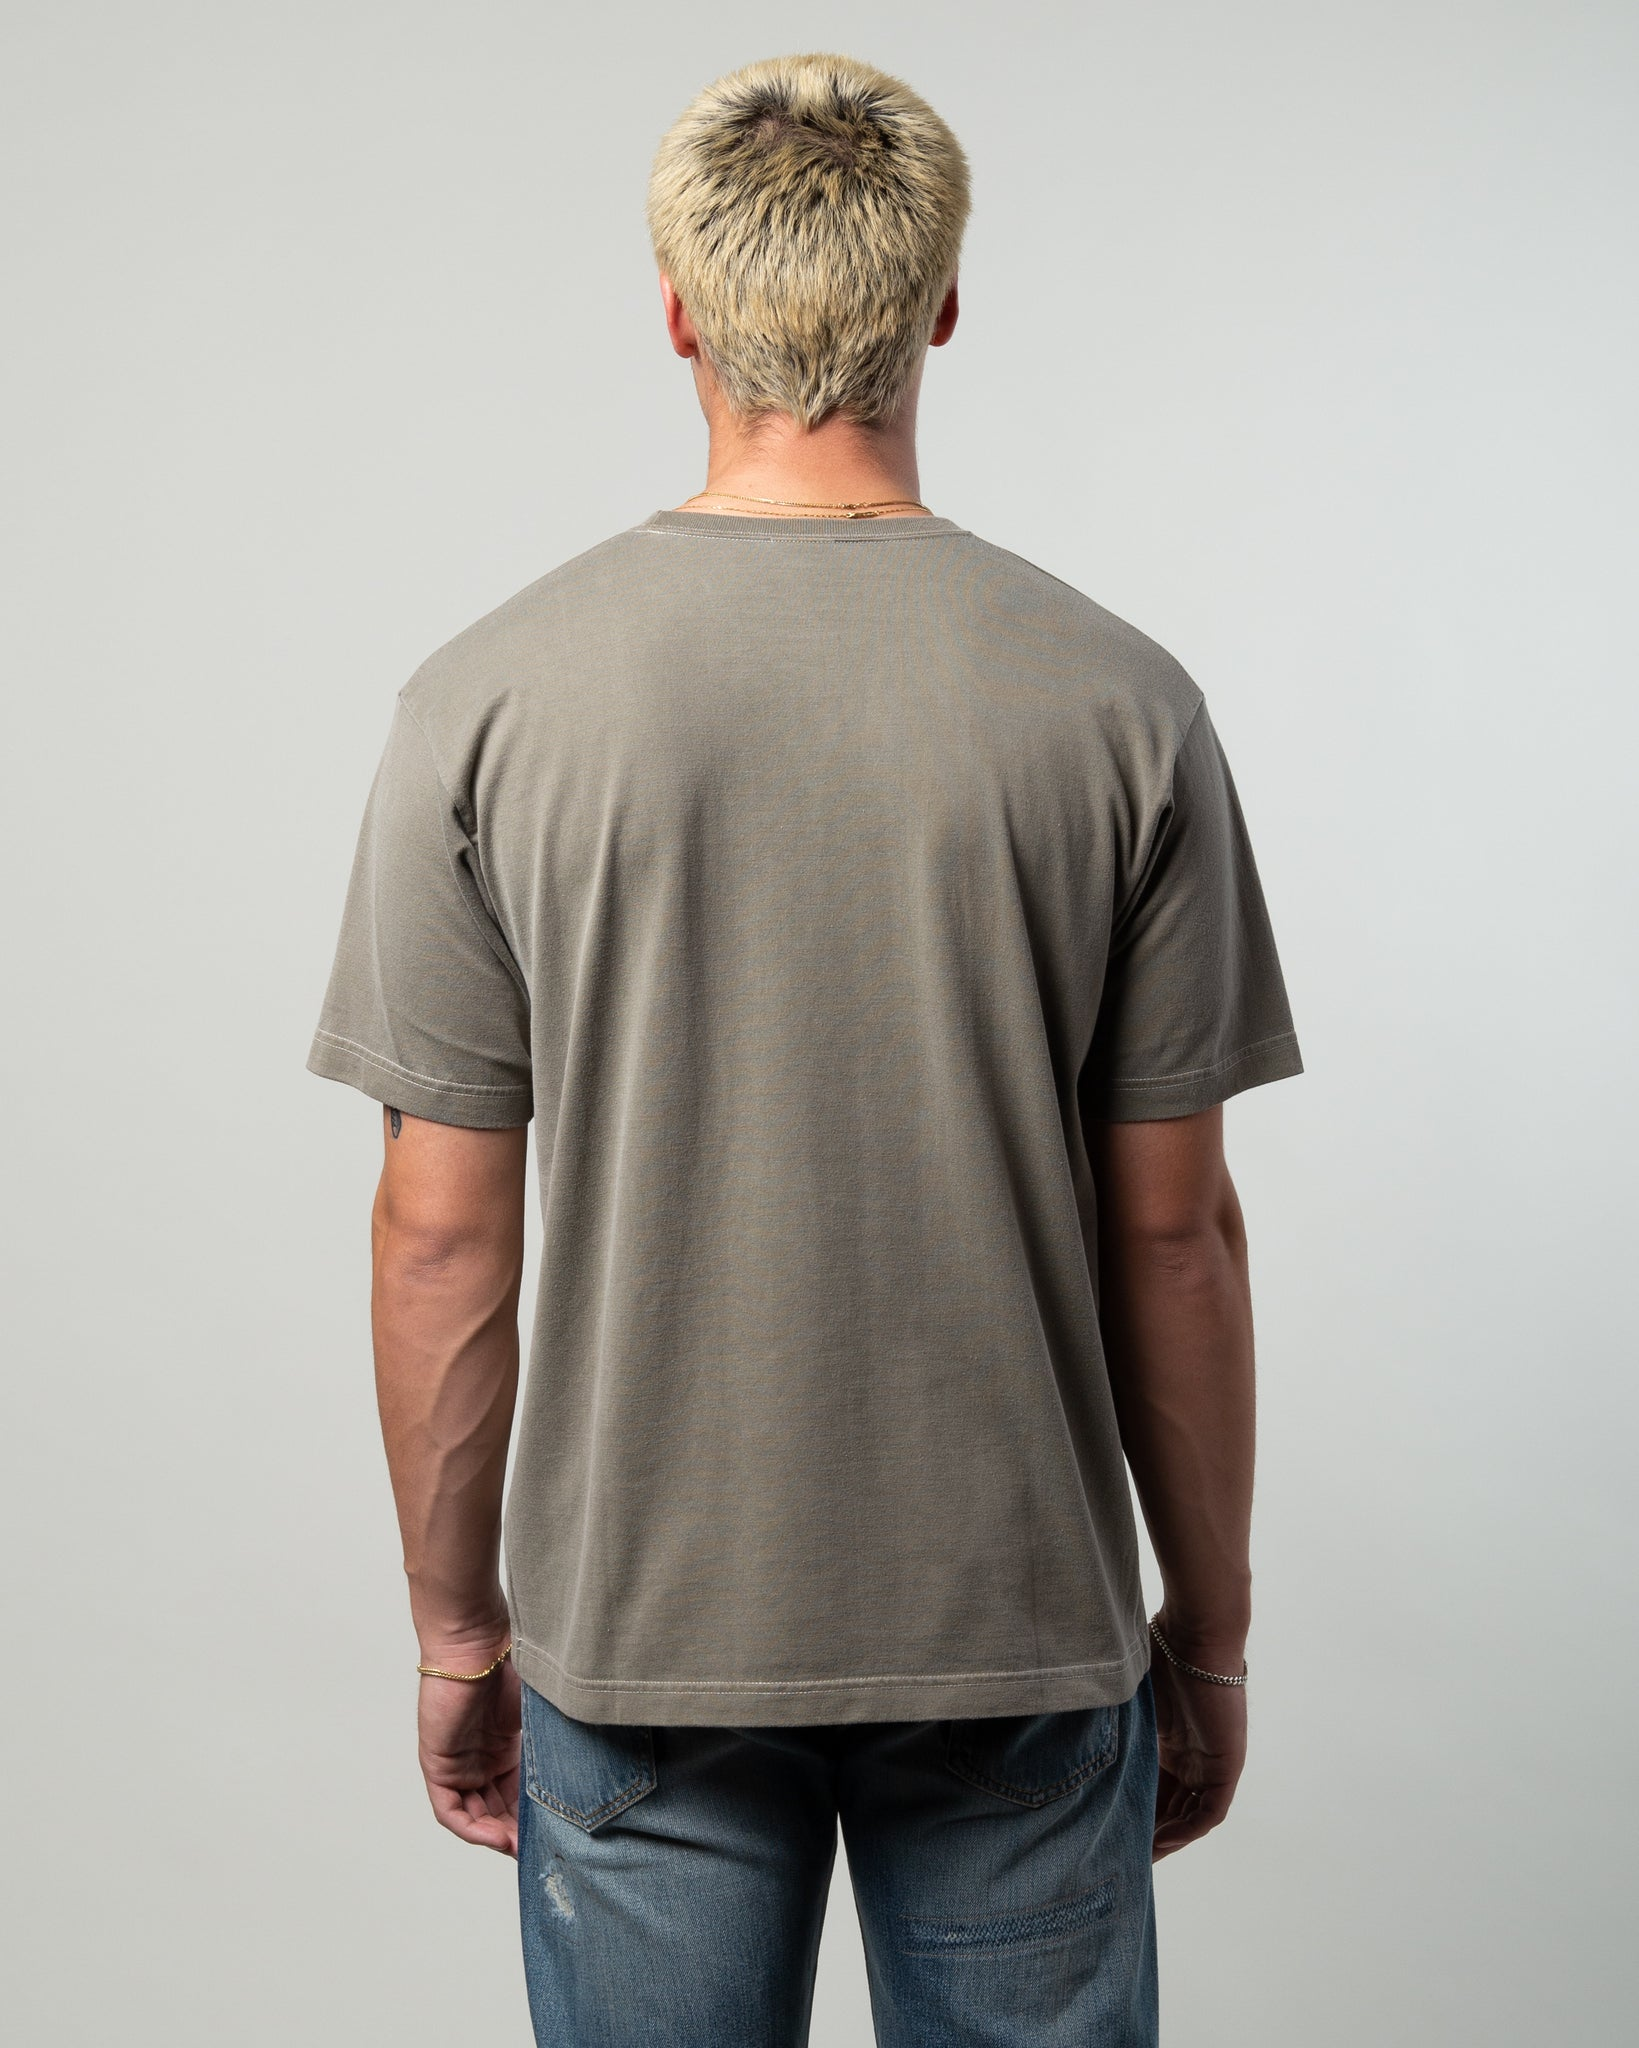 Blank SS 02 Tee Olive Drab